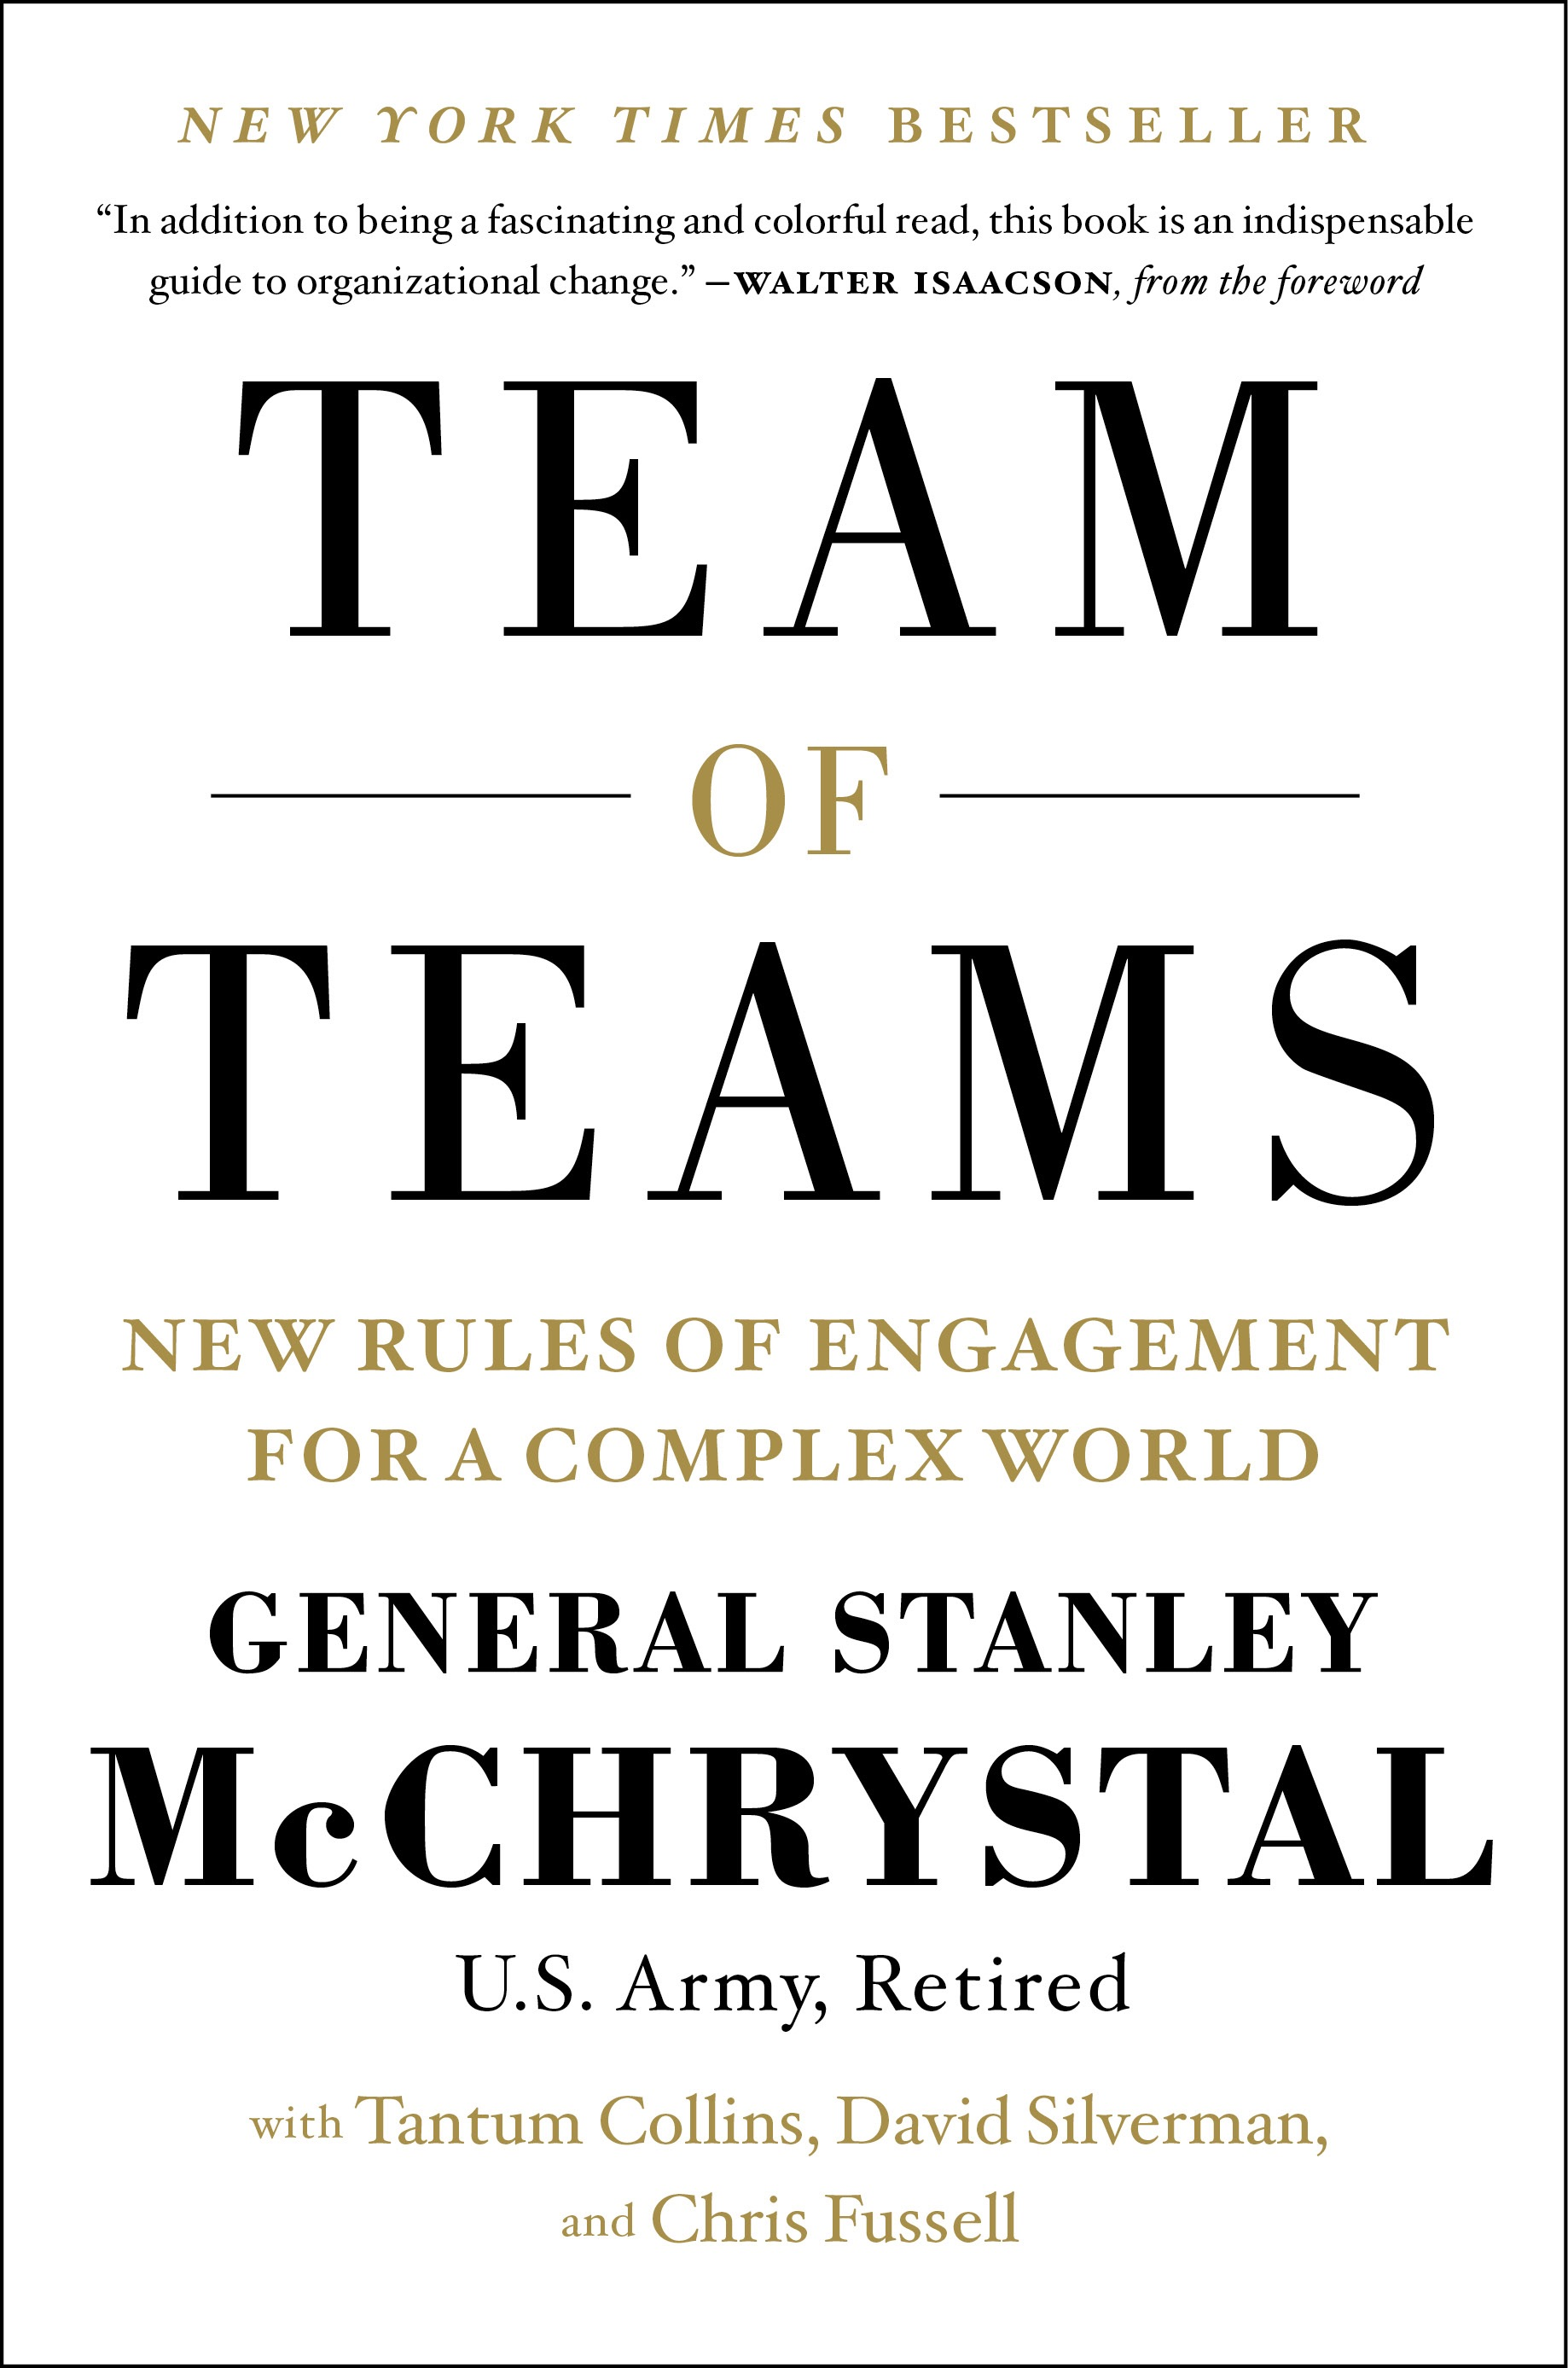 The Leadership Book Every Executive Must Read: